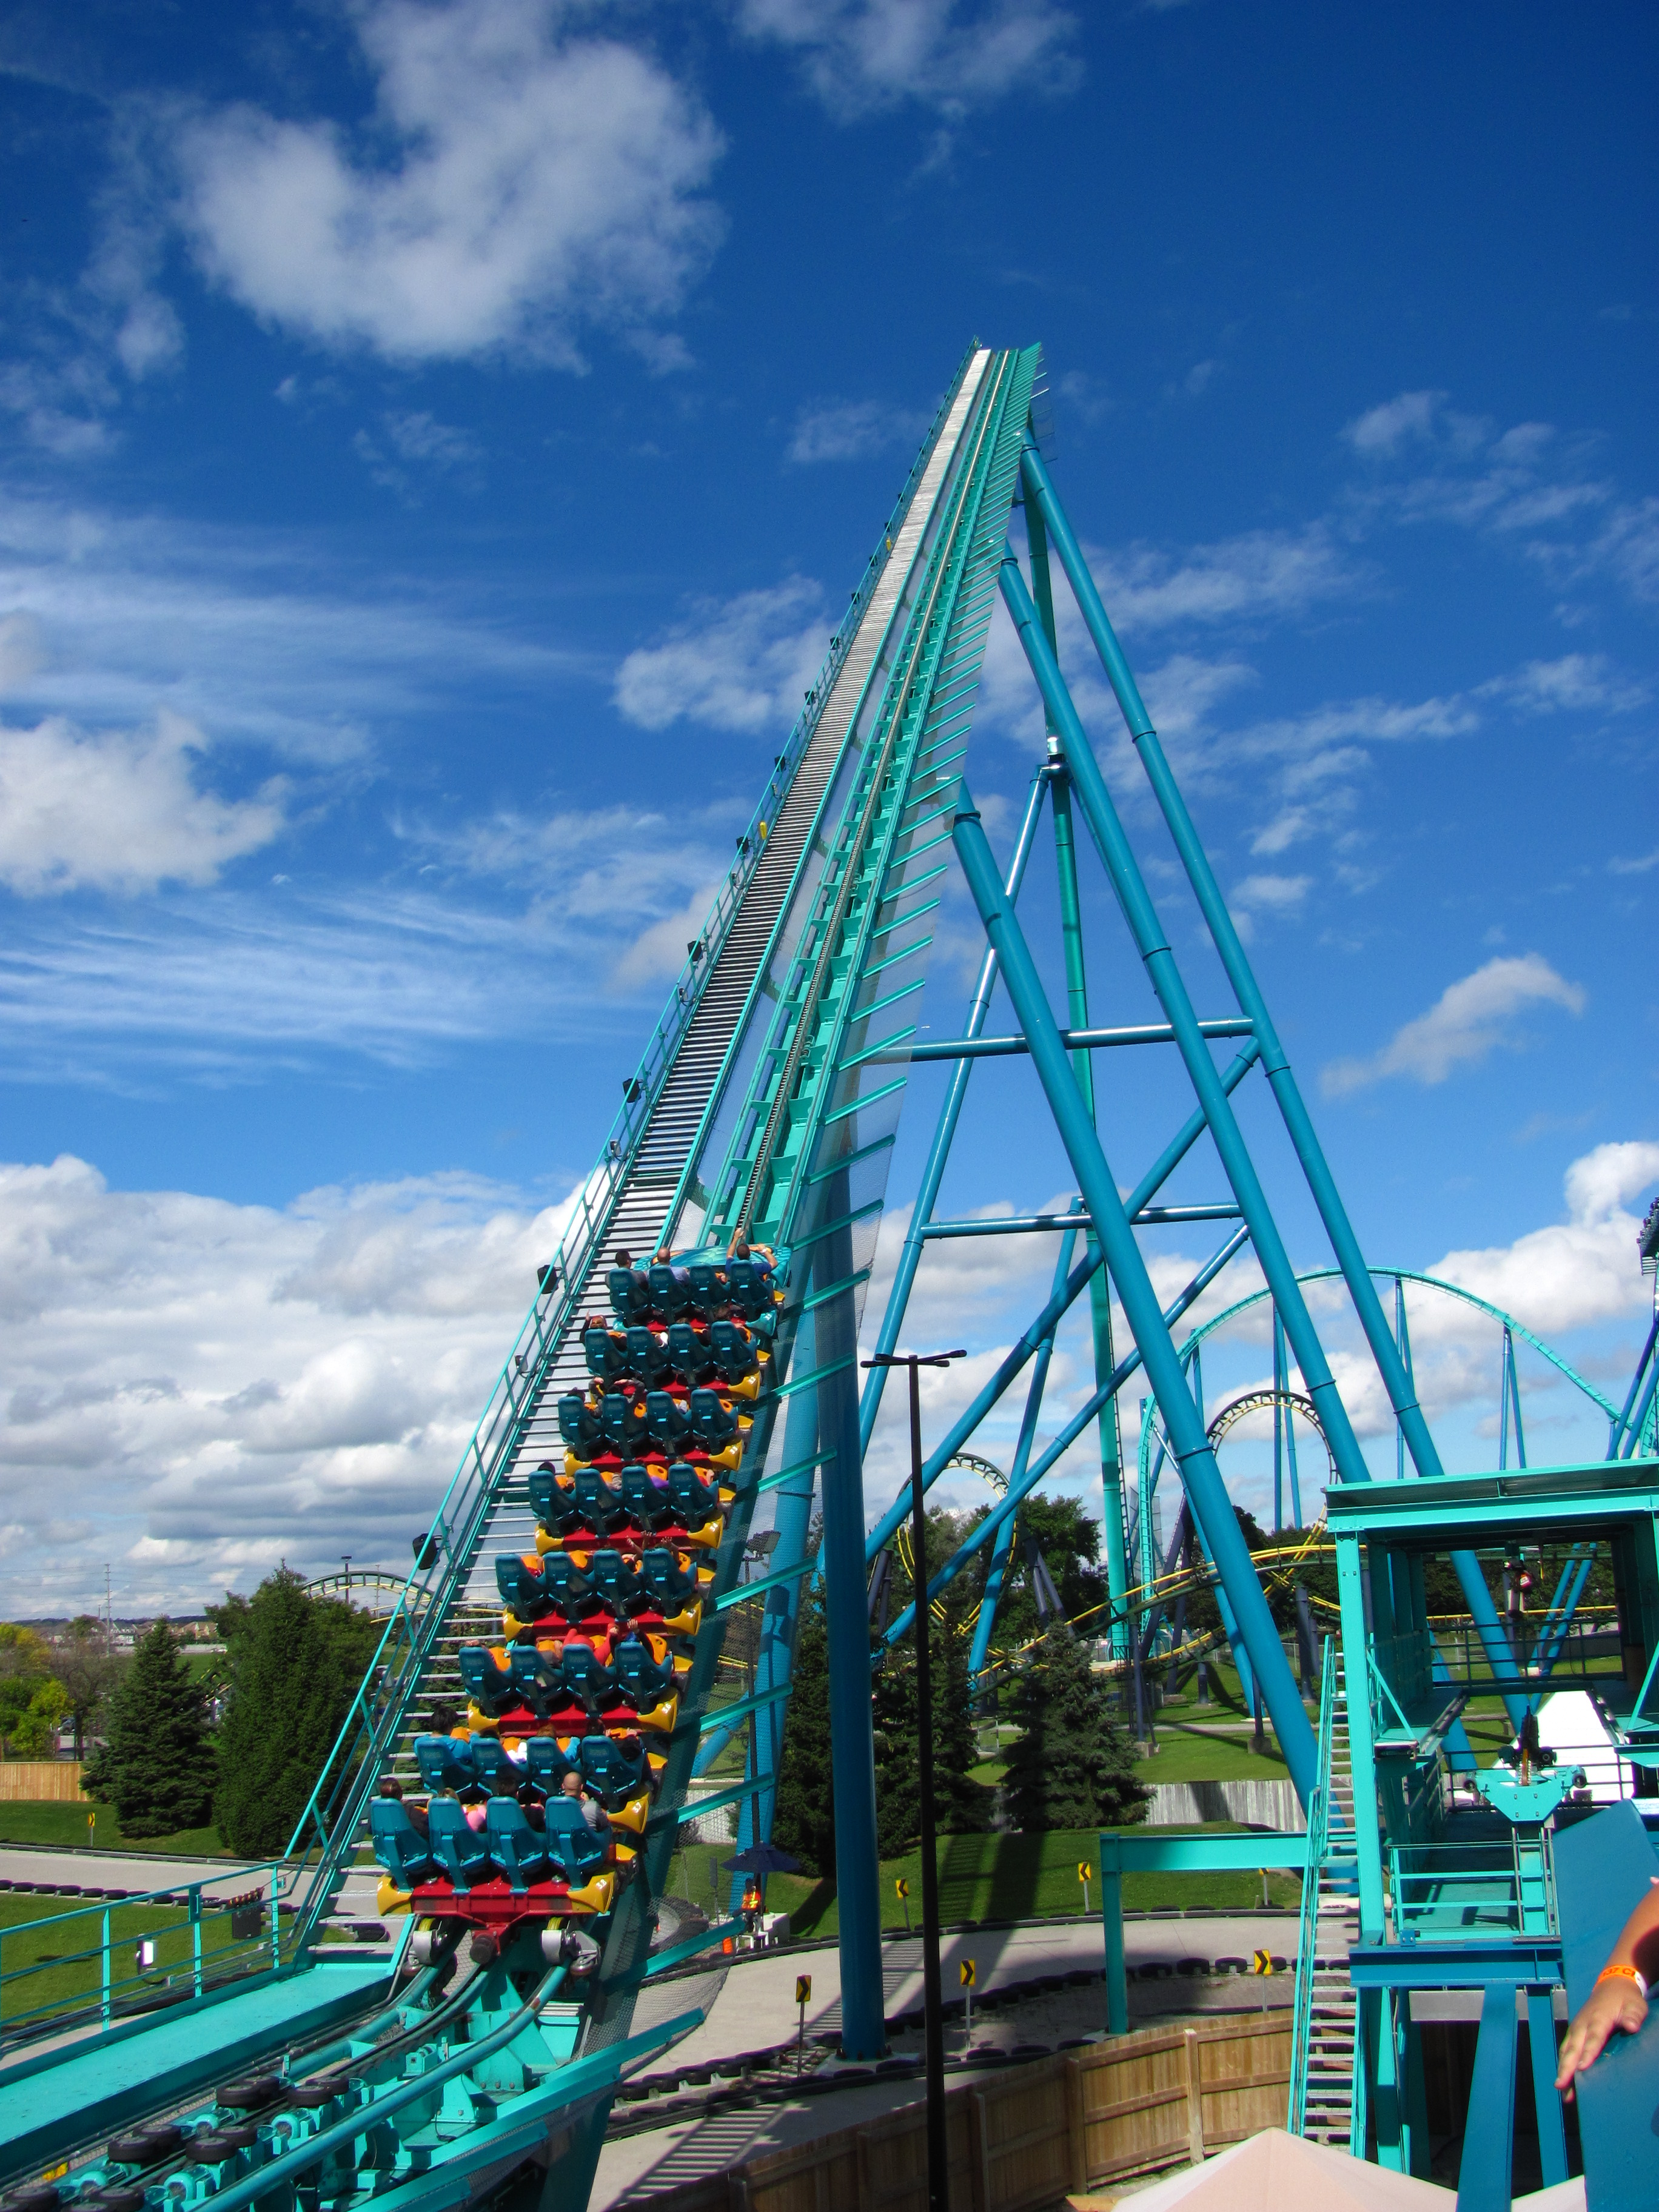 File:Leviathan lift hill with train.jpg - Wikimedia Commons